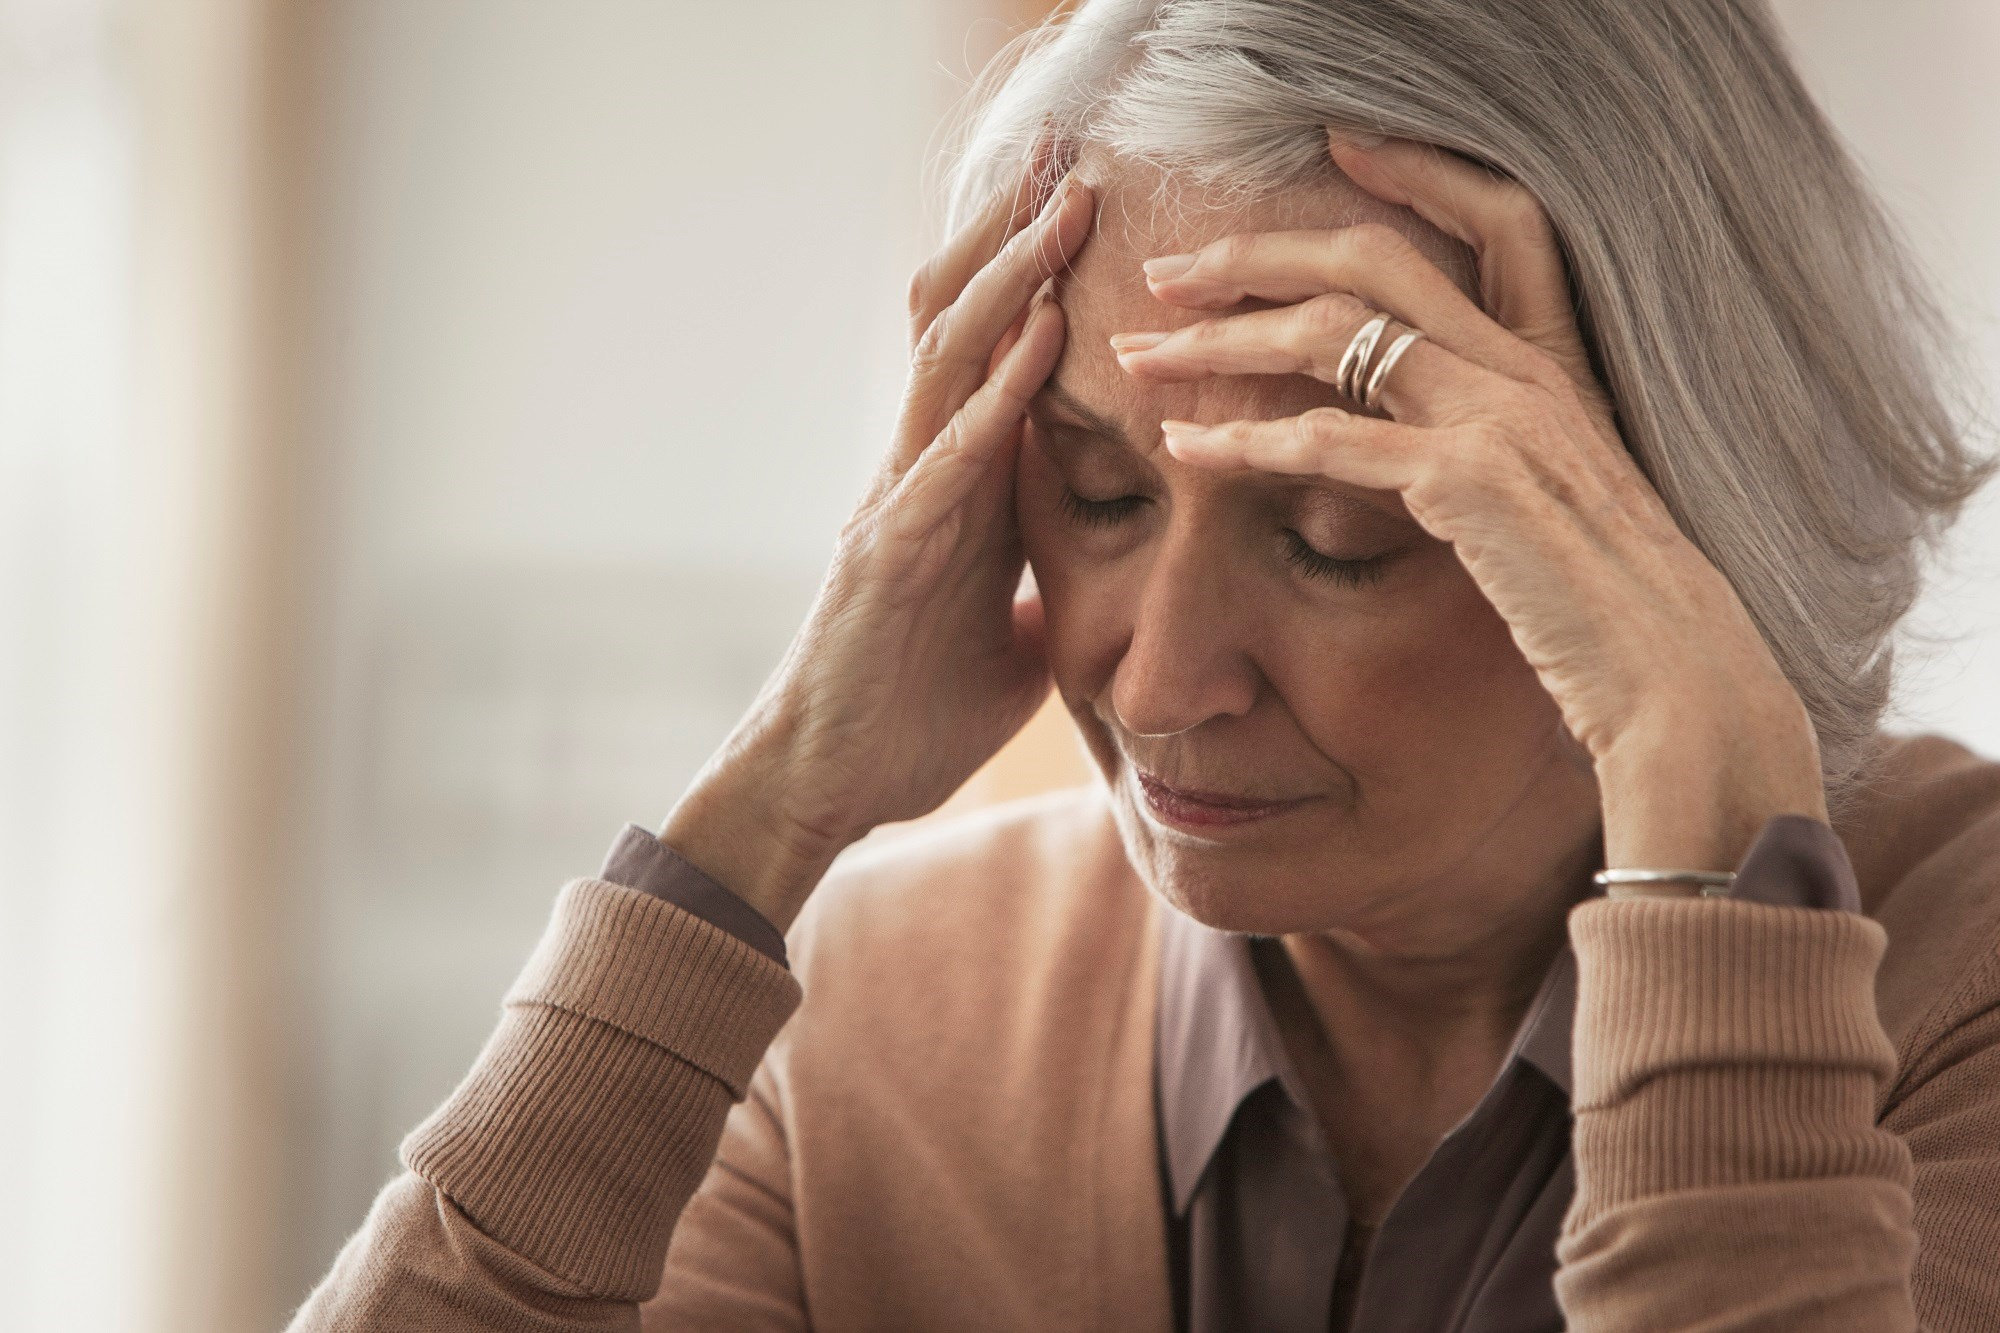 Migraine History Linked to Increase in All-Cause Dementia Risk